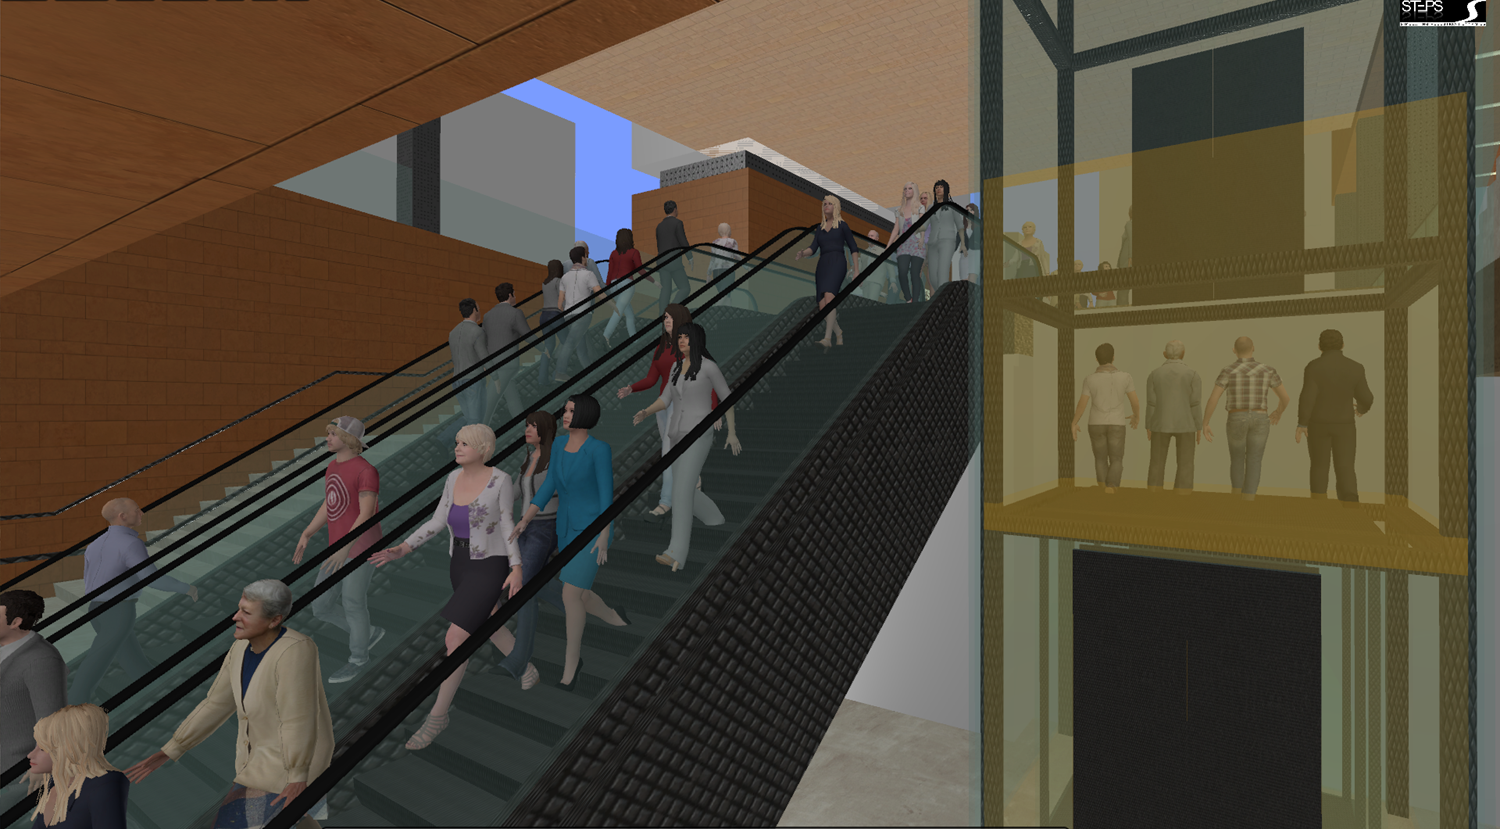 STEPS animated people models using lifts, stairs and escalators for vertical transport